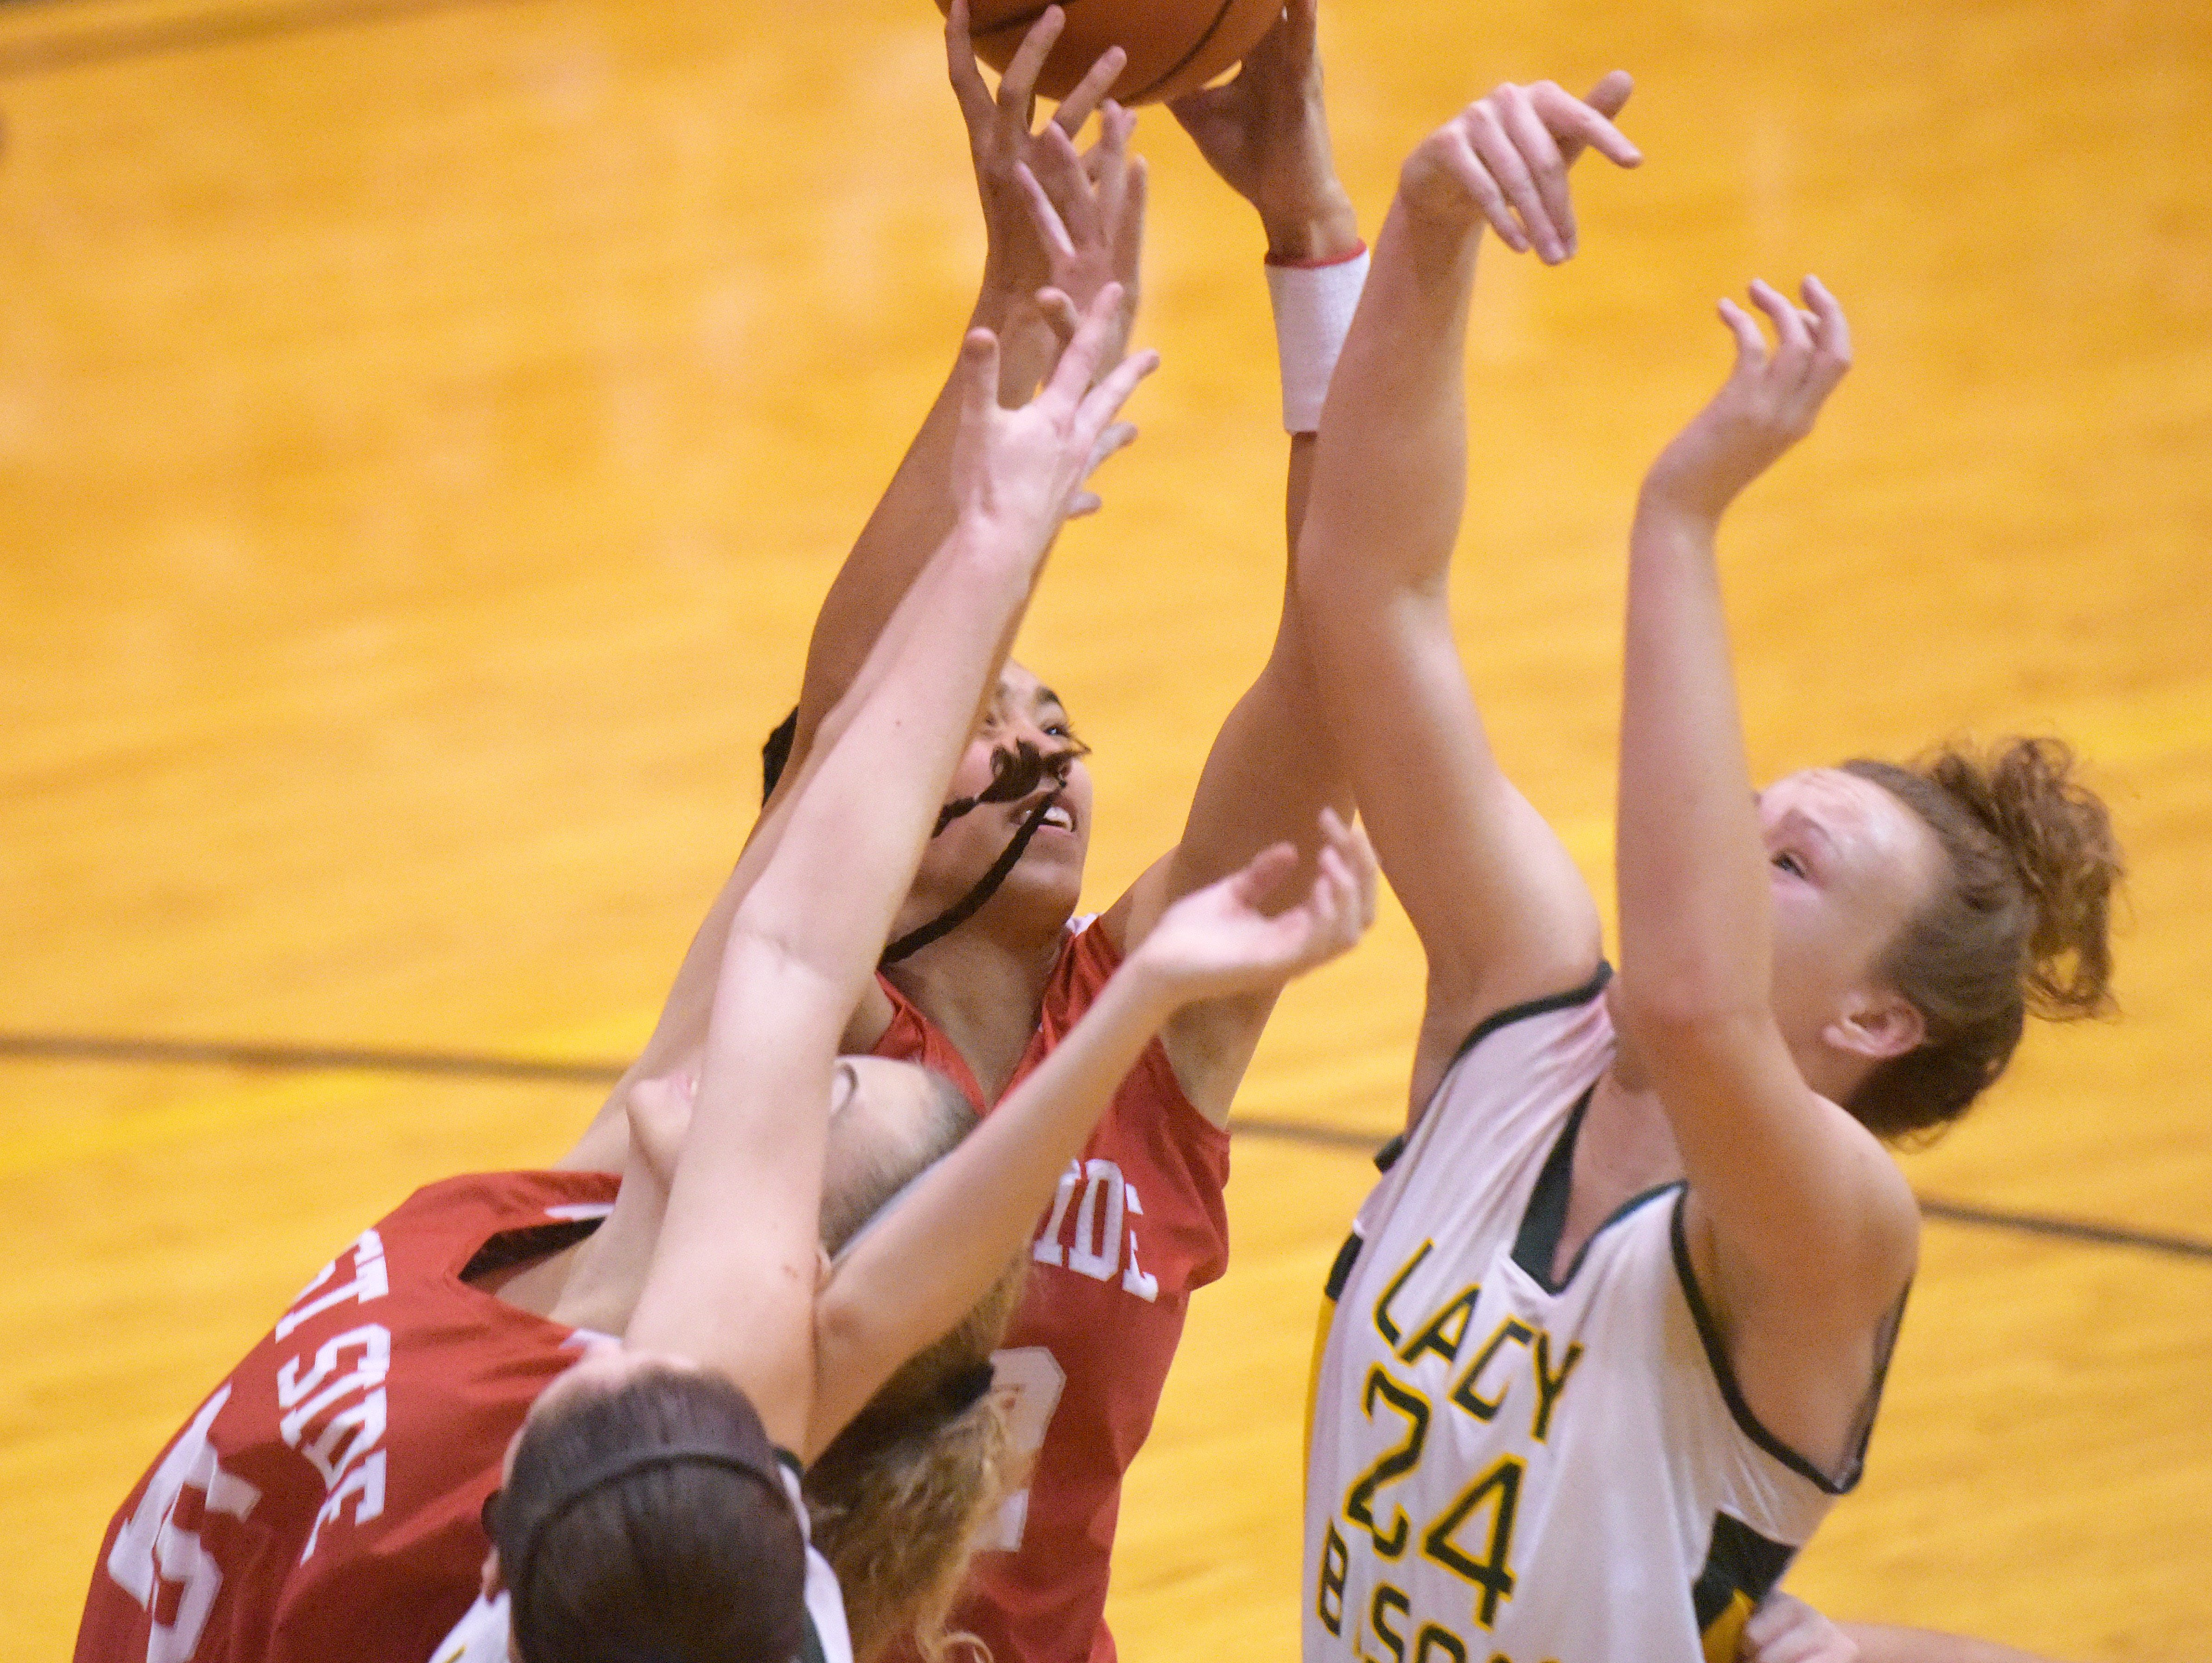 West Lafayette's Kaia Harris, center, goes up for a rebound with Benton Central's Katie Shields Thursday, December 10, 2015 at Benton Central High School. Benton Central was victorious over West Lafayette.